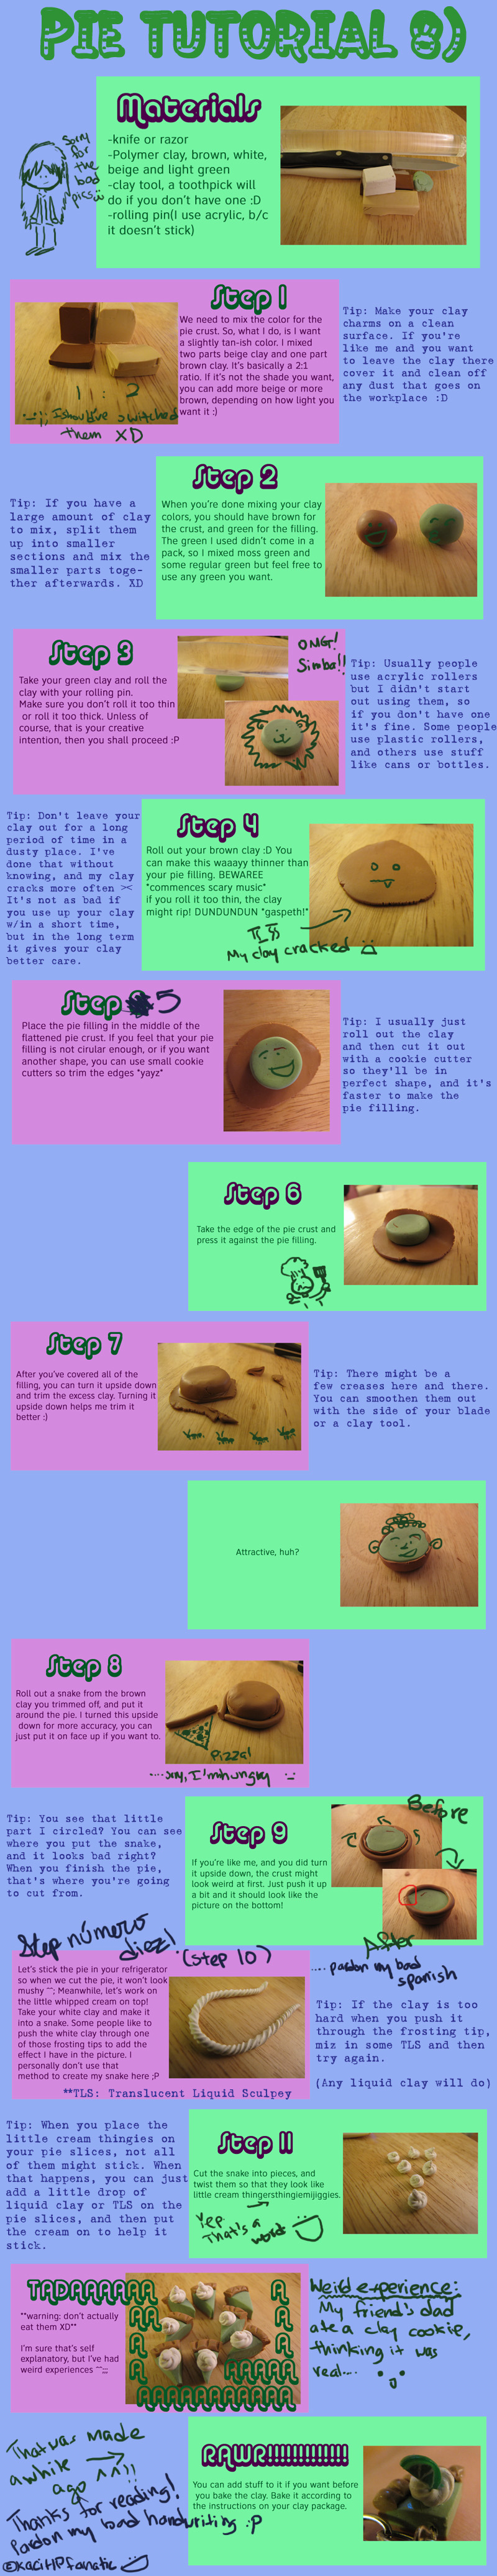 Pie Tutorial by KaciHPfanatic